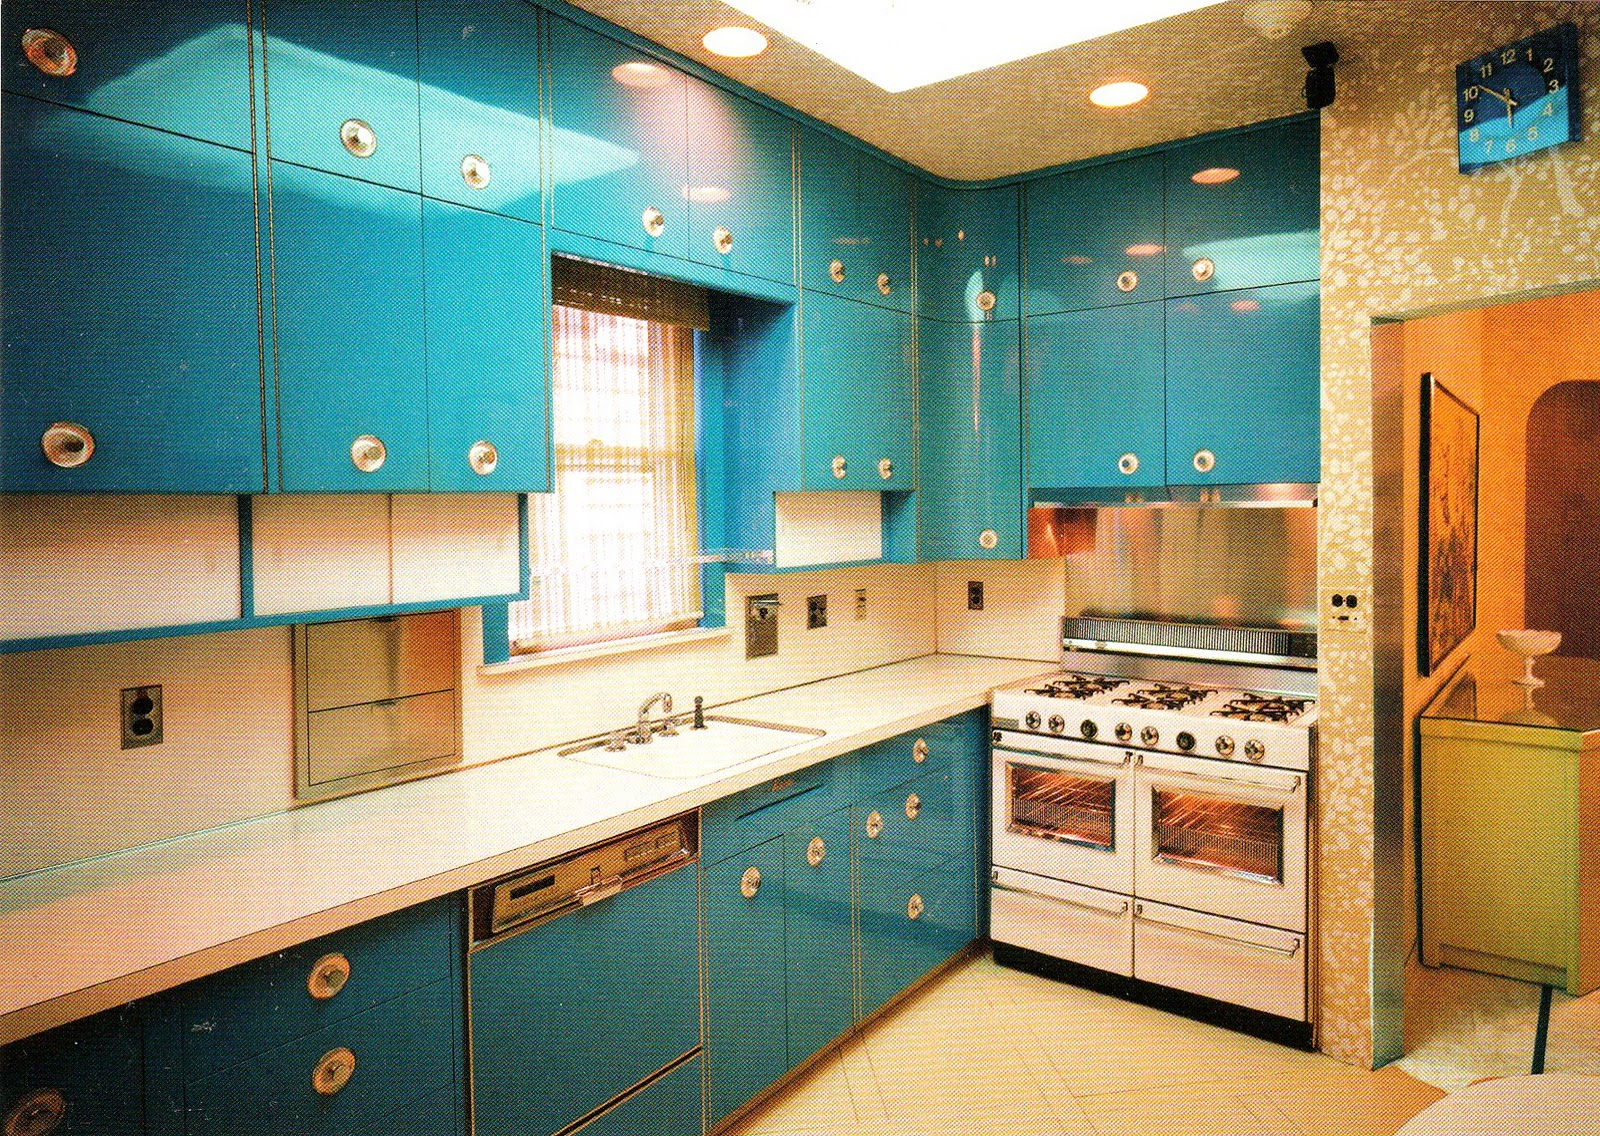 Louis Armstrong Kitchen